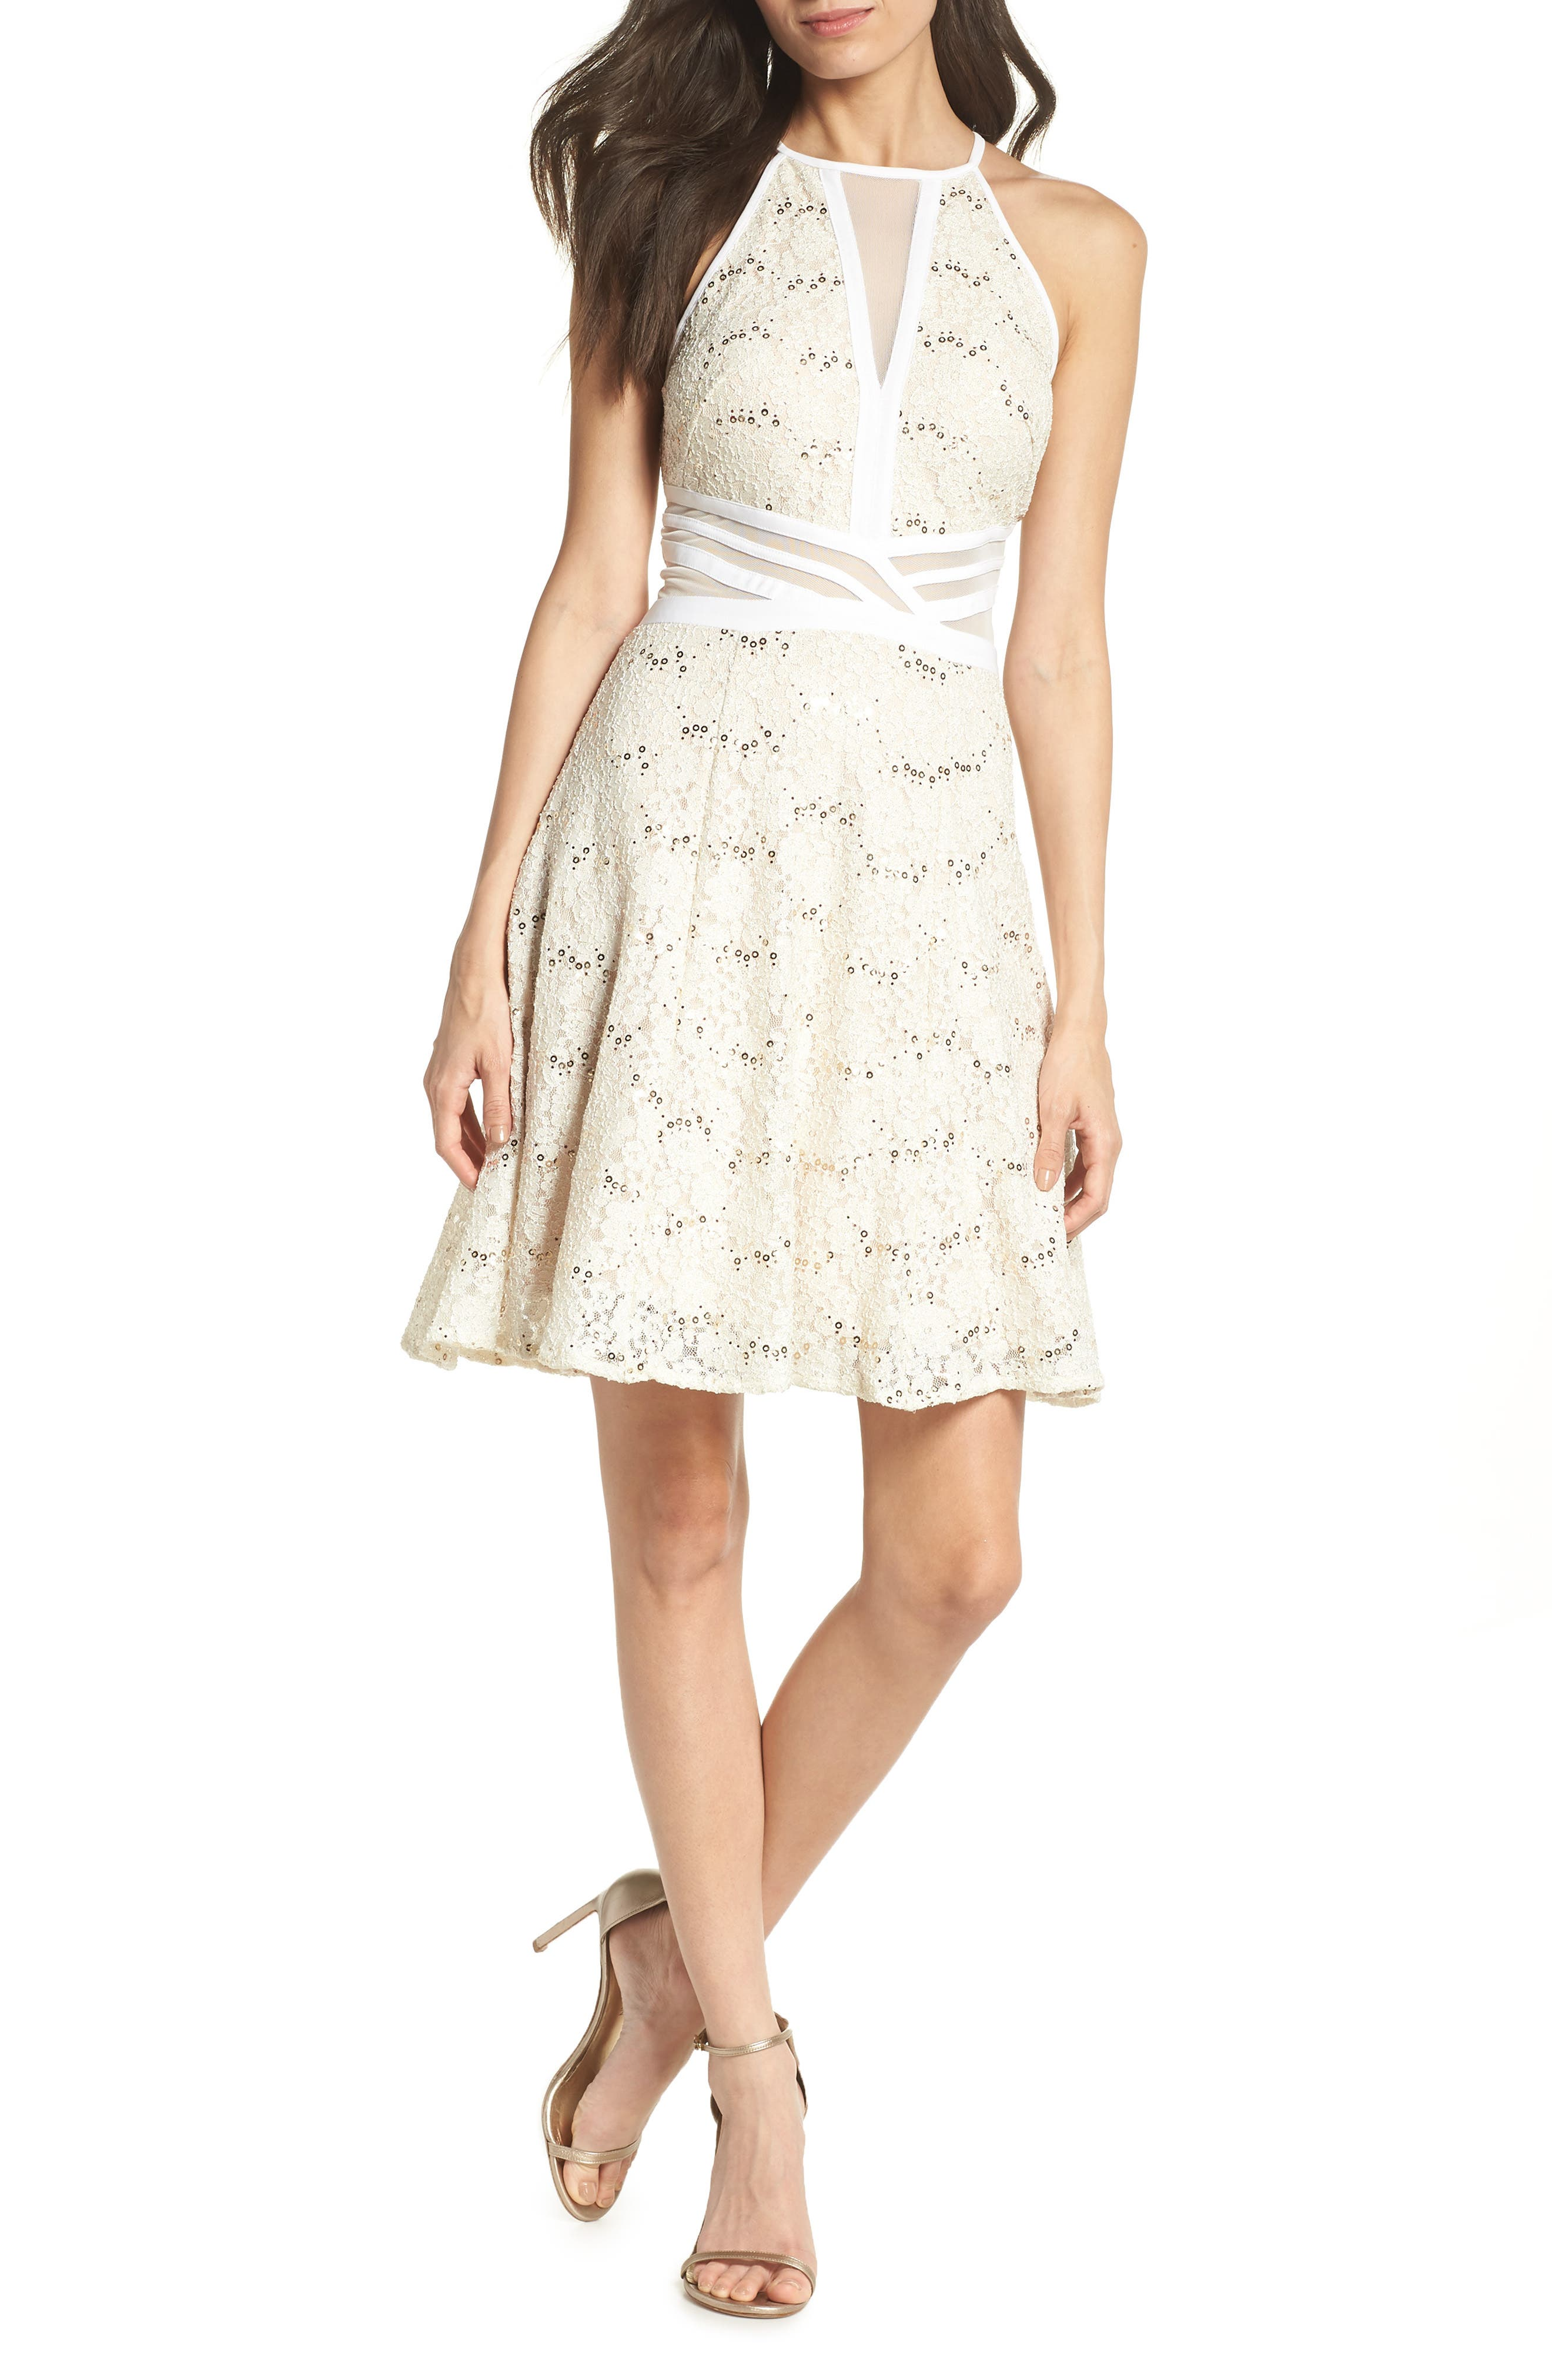 Morgan & Co. Sheer Inset Lace Fit & Flare Dress, /12 - Ivory